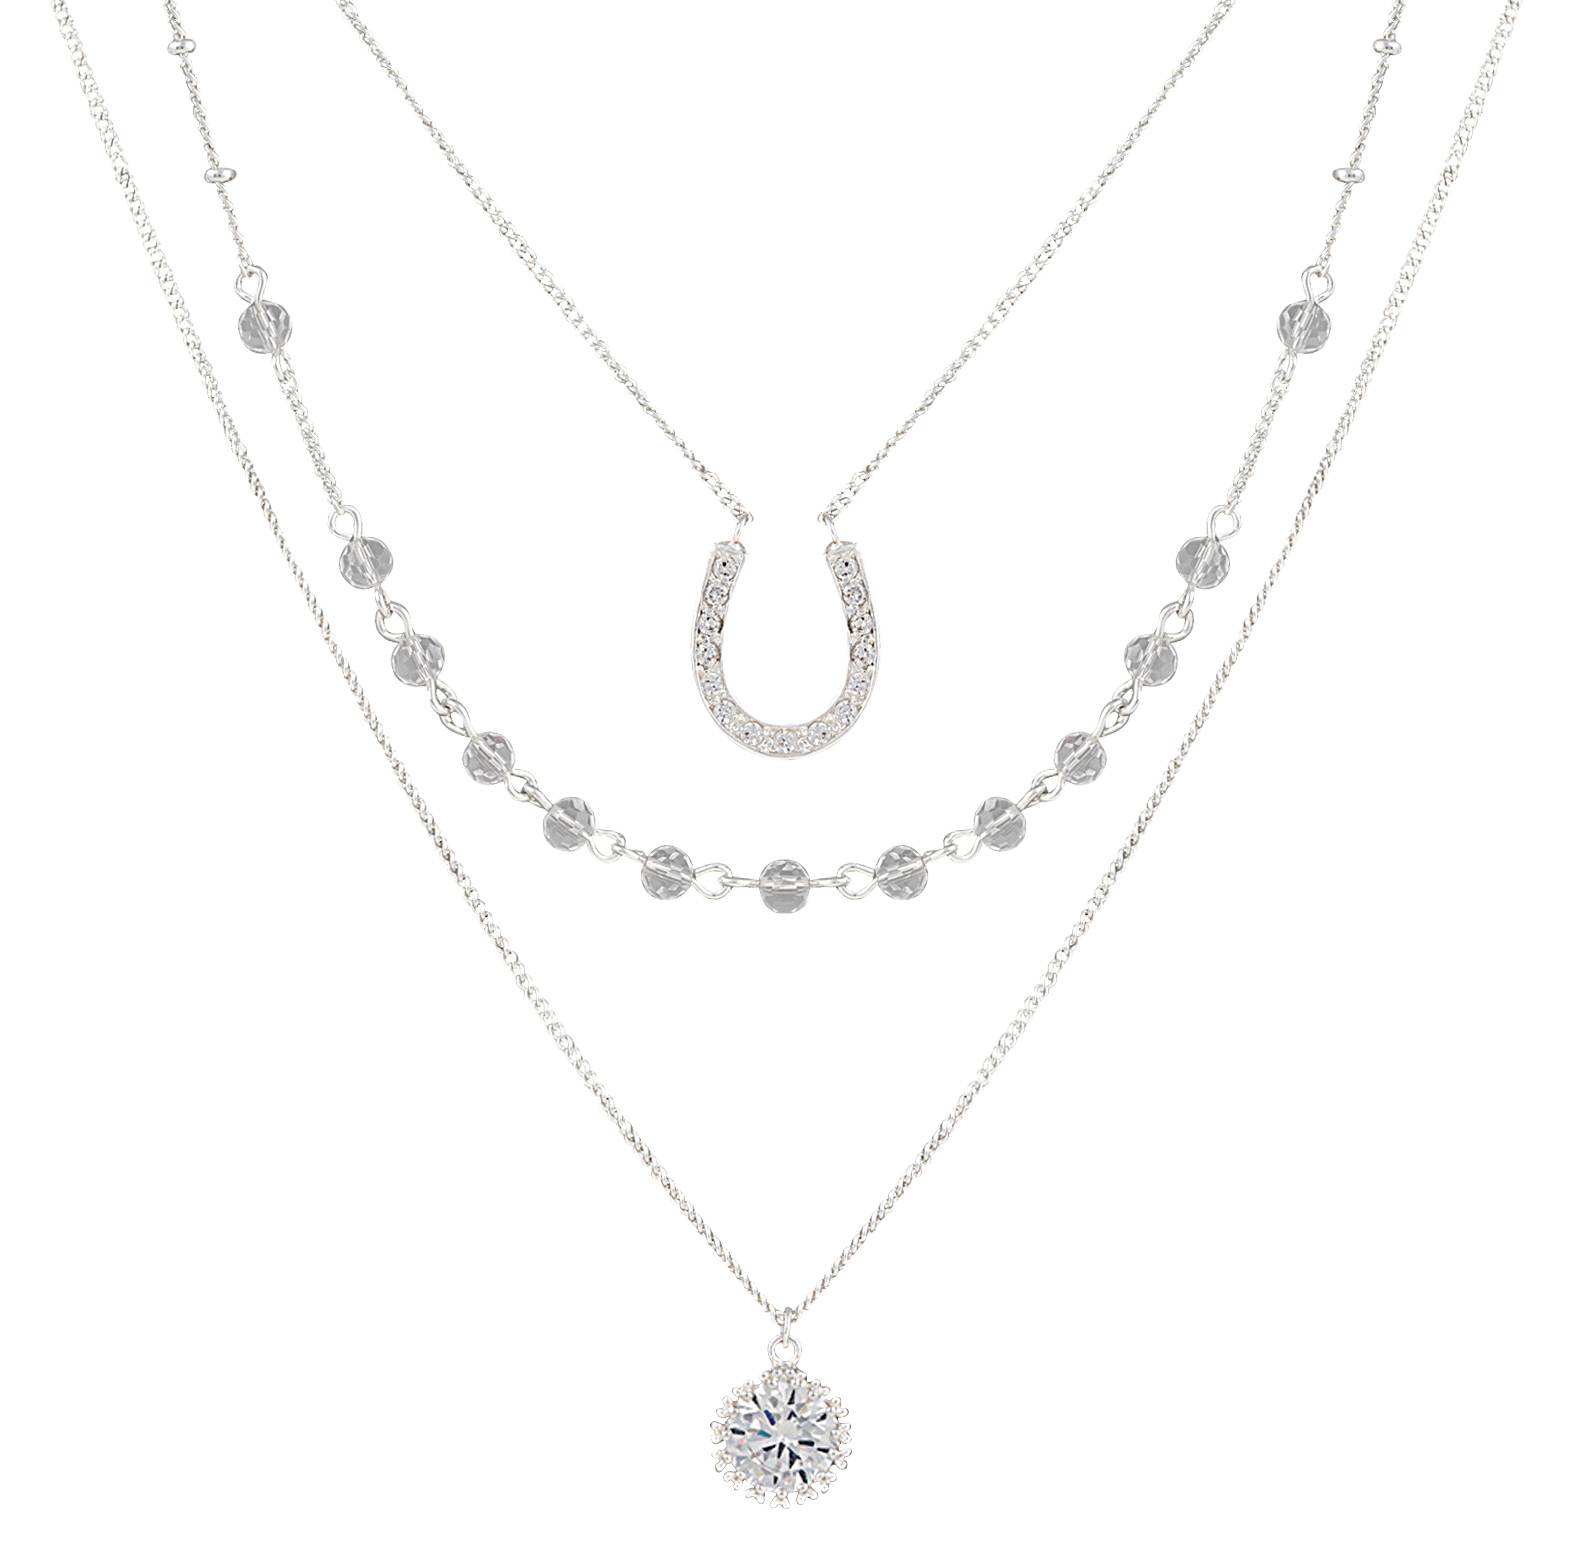 Montana Silversmiths Fortune's Snowflake Necklace